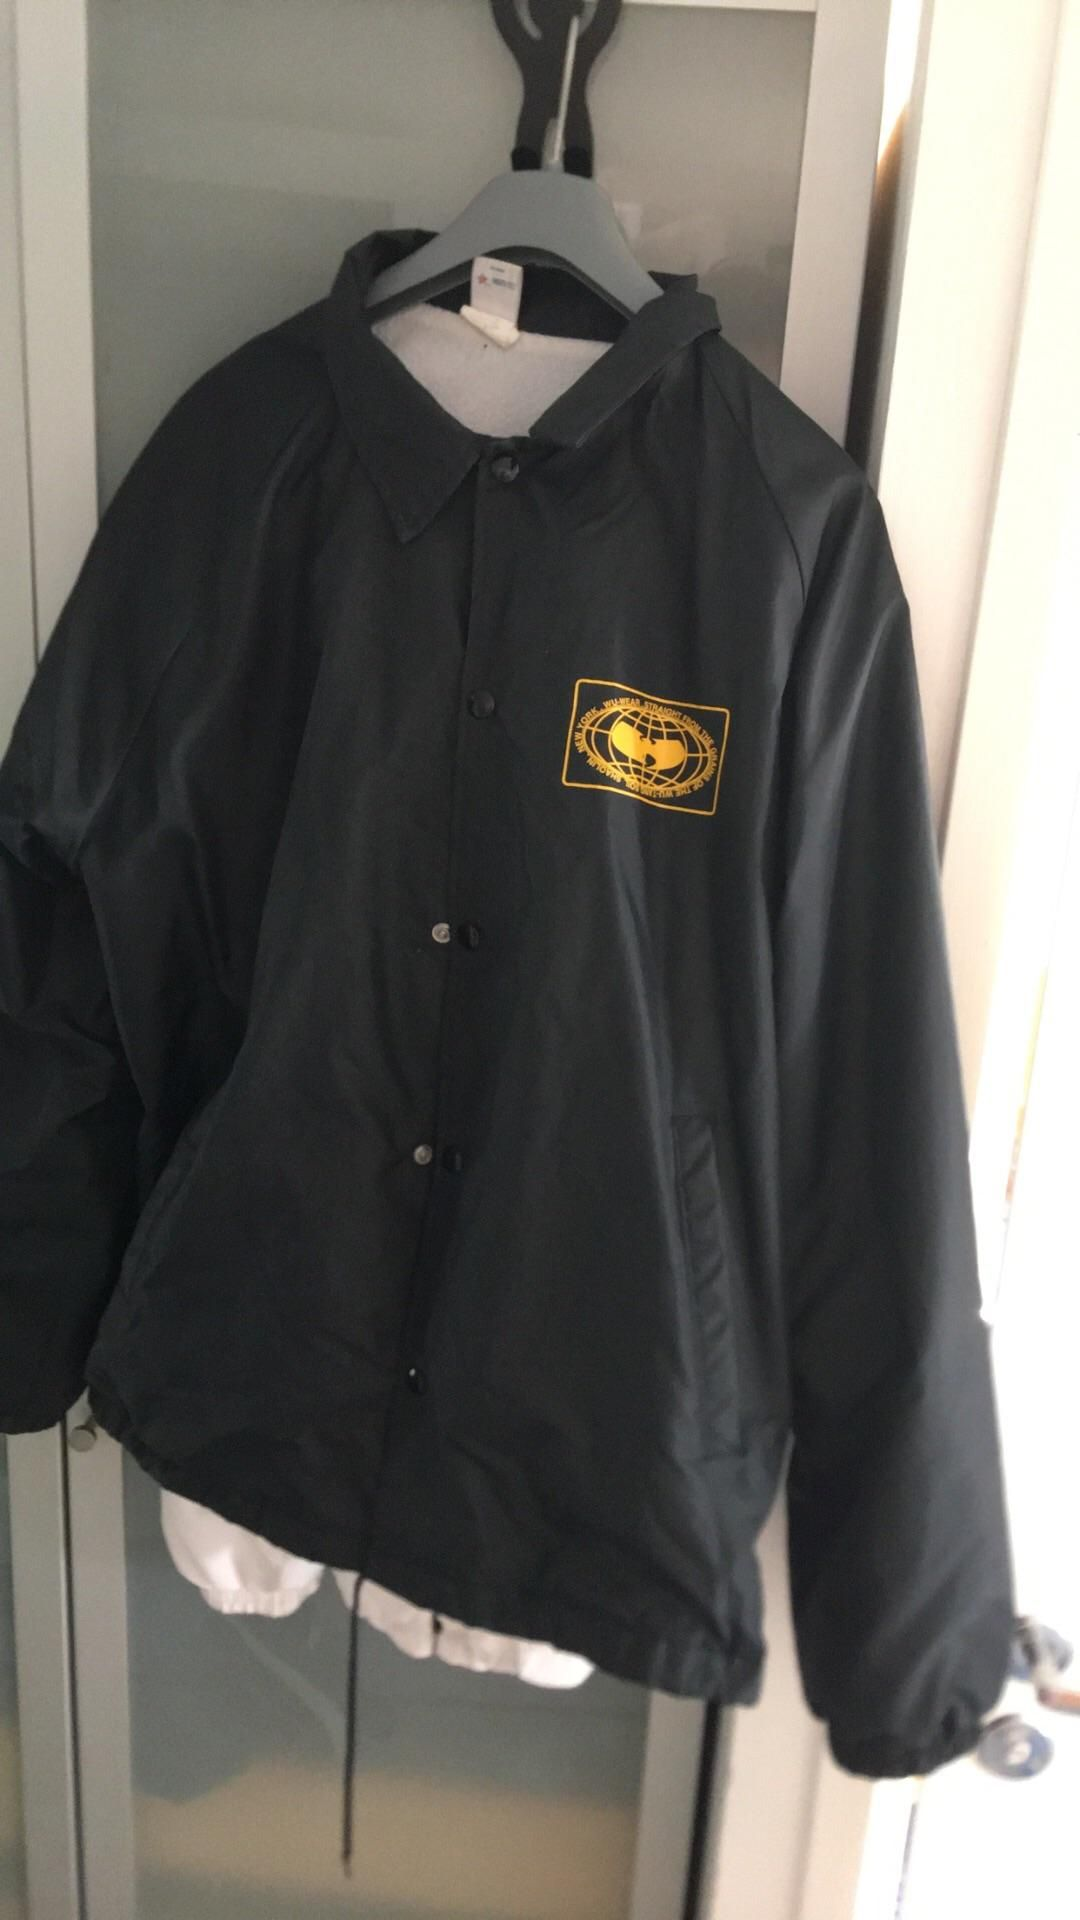 Inspo 1996 Wu Wear Coach Mint Condition Wu Tang Globe Logo In The Front Wu Tang Logo In The Back Bought In Nyc In 96 How To Wear Globe Logo Stuff To Buy [ 1920 x 1080 Pixel ]